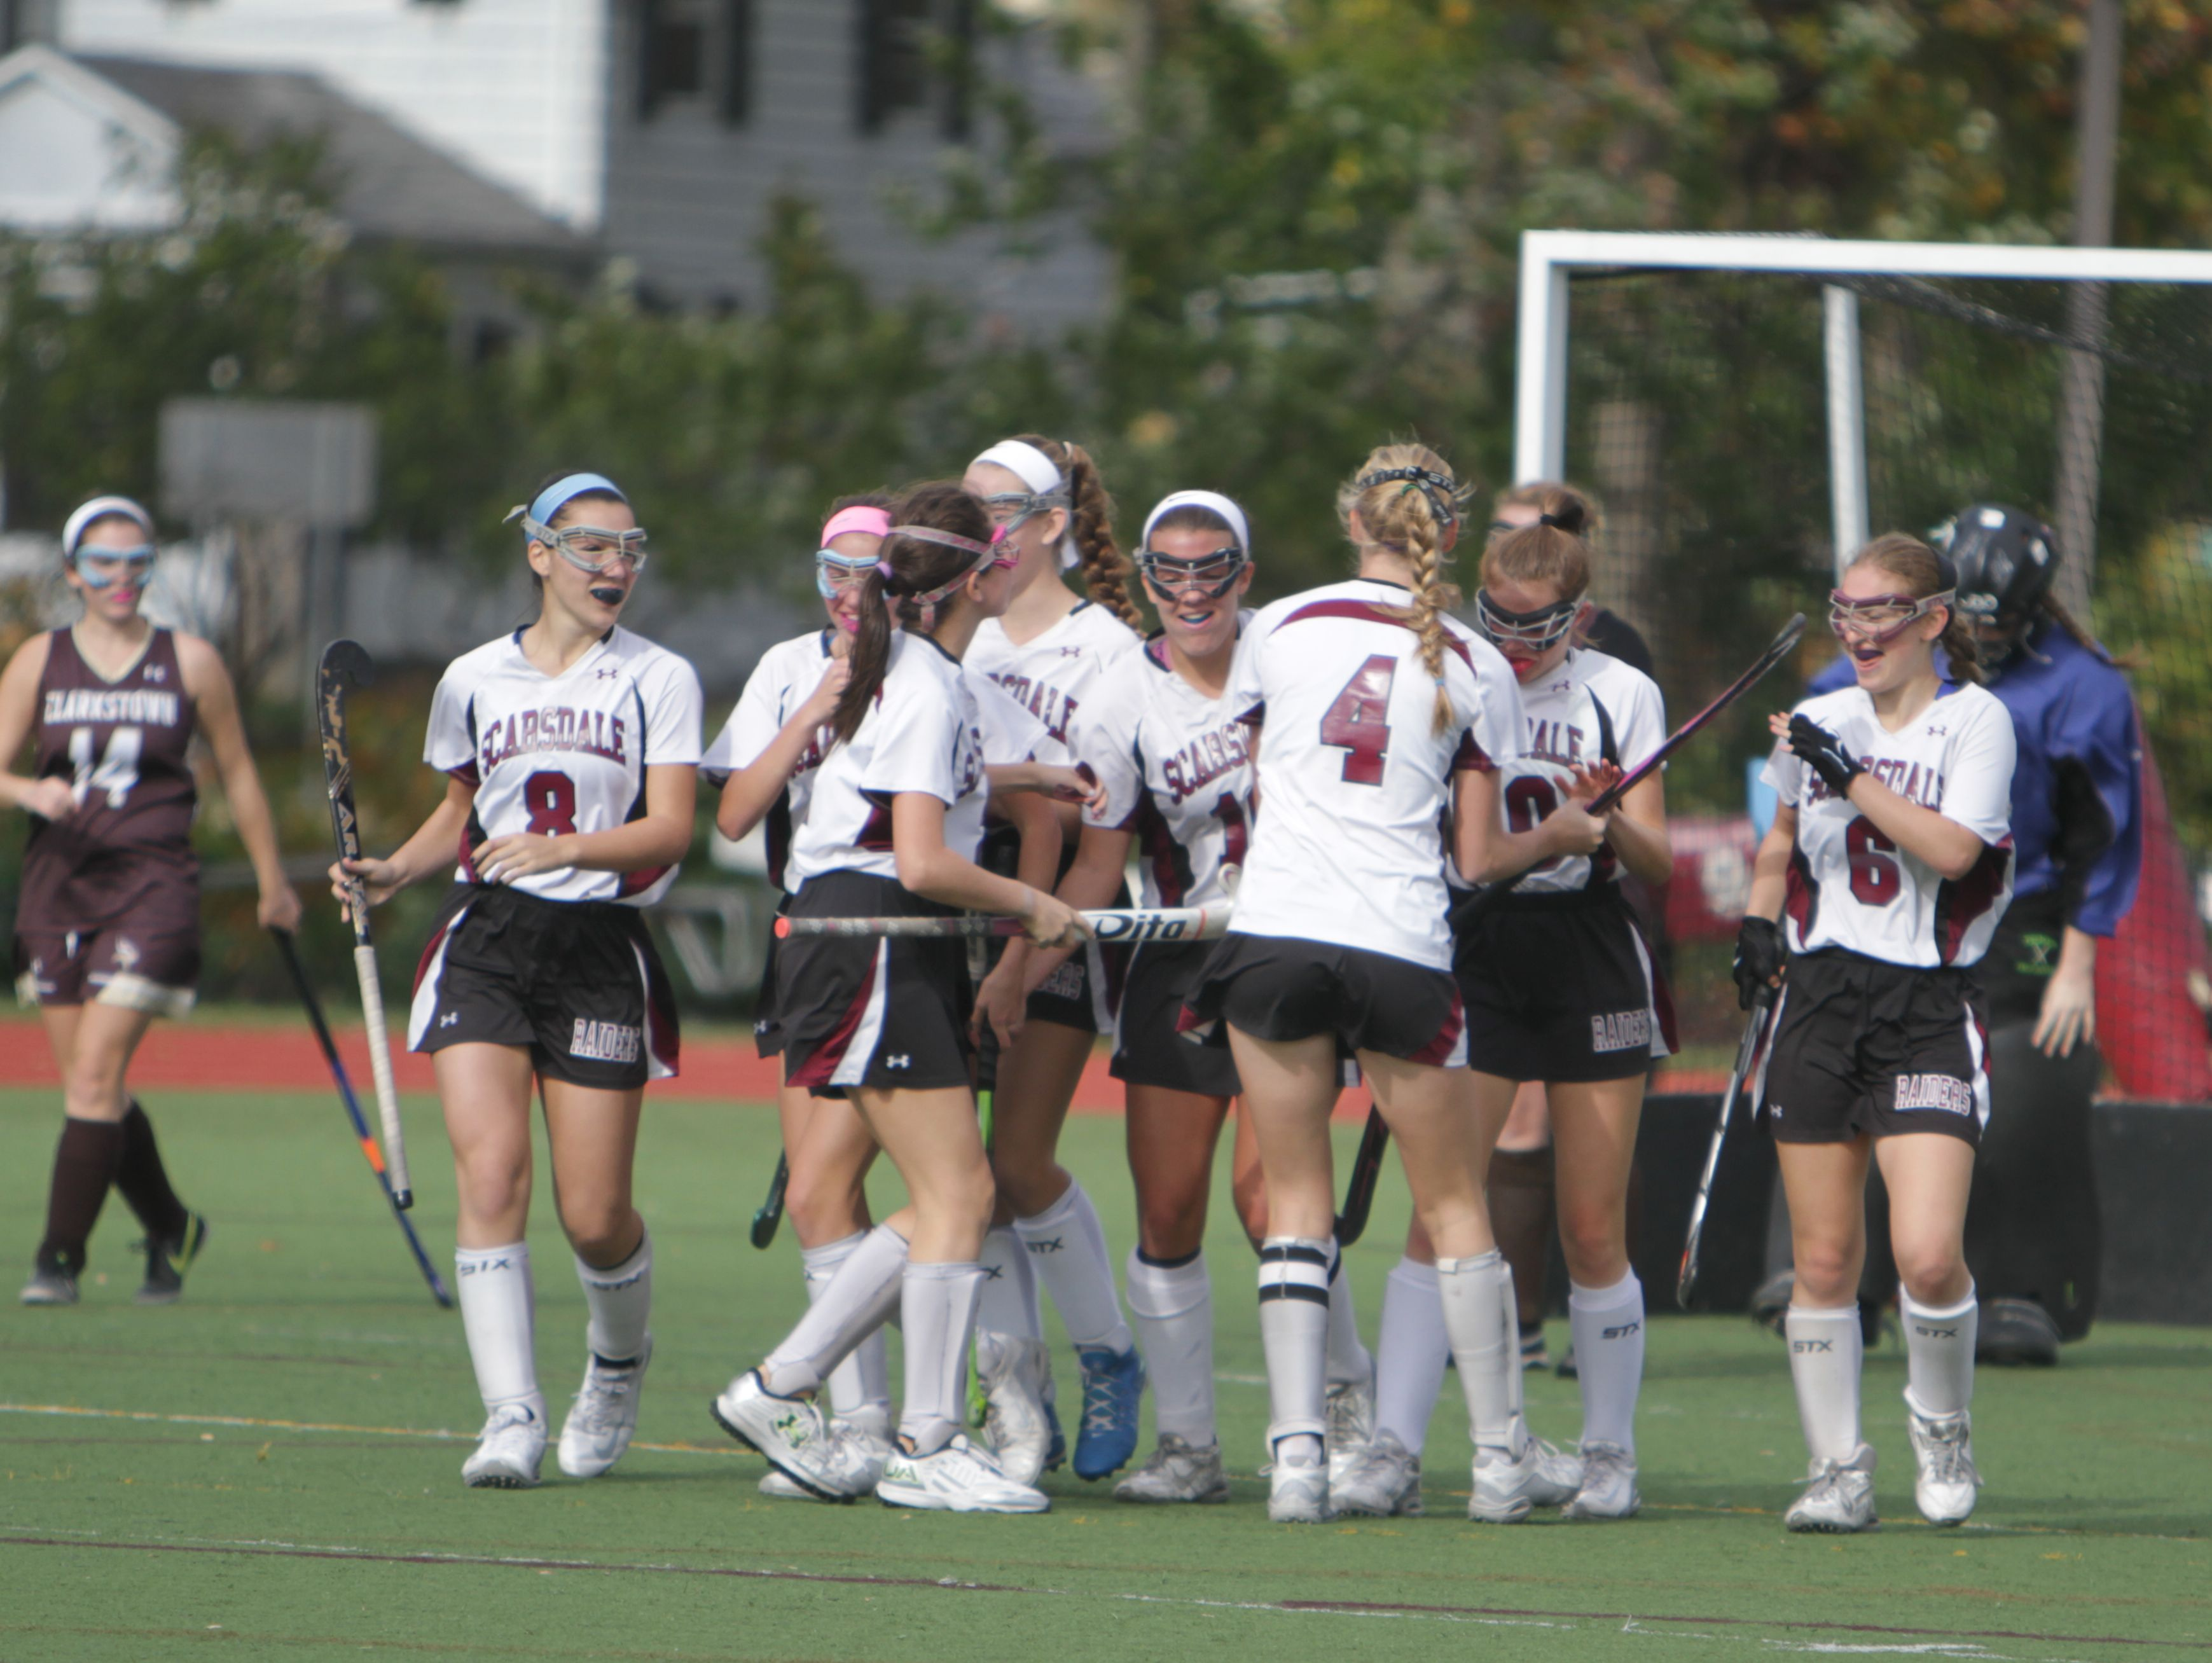 Scarsdale celebrates after a goal from Erin Nicholas put the Raiders up 3-1 during a Section 1, Class A field hockey semifinal game between Scarsdale and Clarkstown South at Scarsdale High School on Saturday, Oct. 29, 2016. Scarsdale won 7-1.